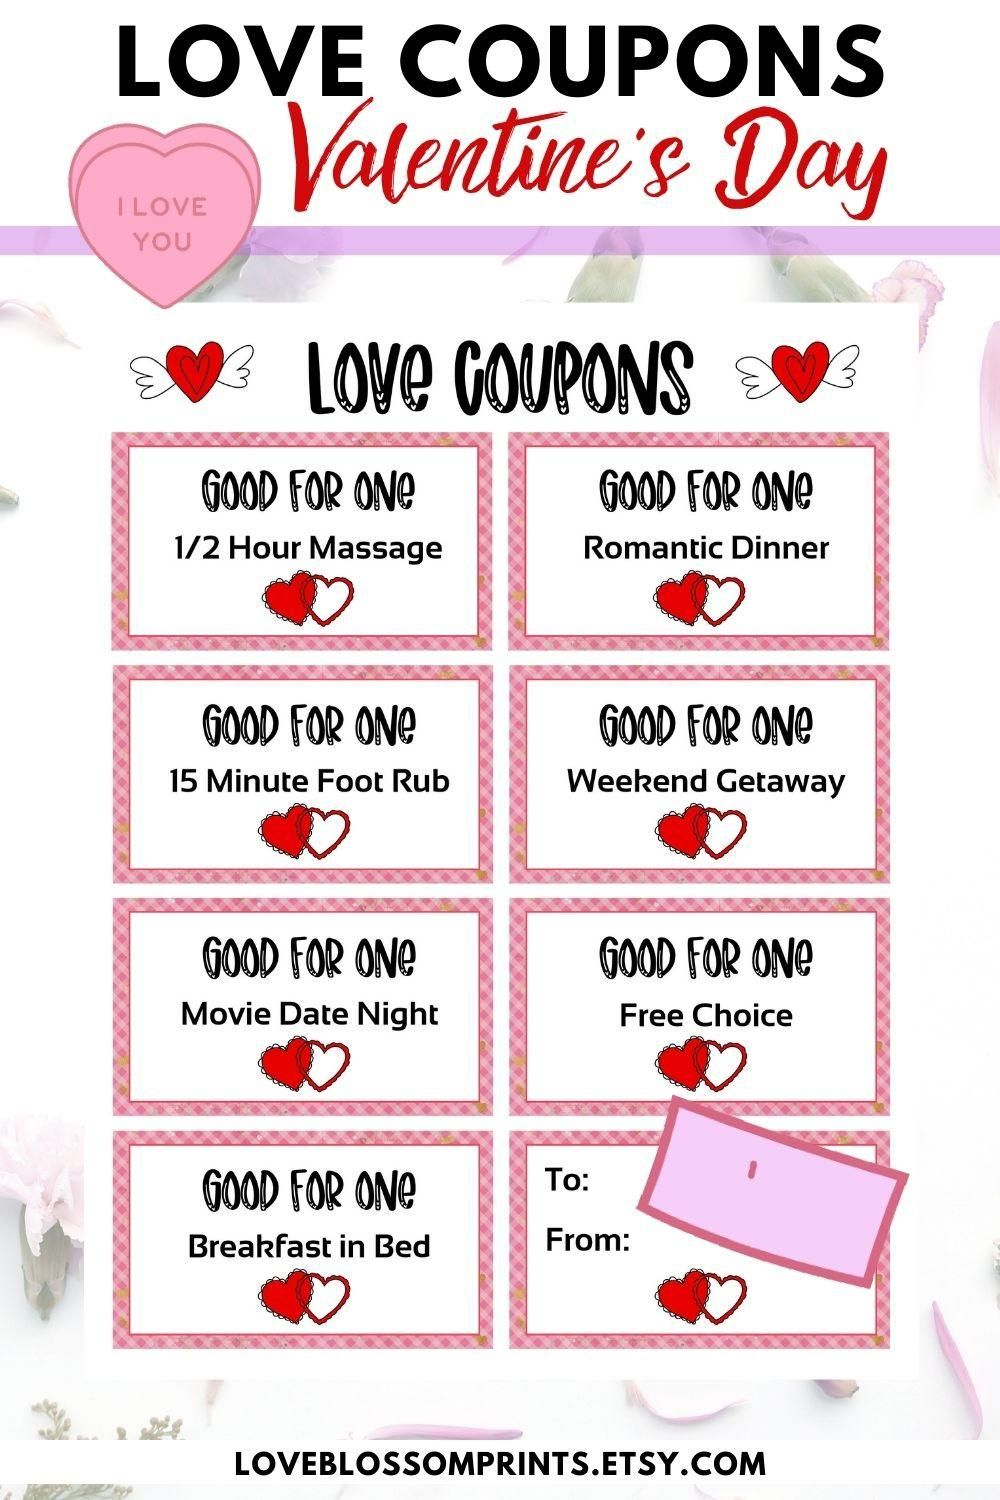 Valentine S Day Love Coupons For Couples Anniversary Gift Coupons Love Coupons For Him Love Coupons For Her Printable Love Coupon Book Video Video In 2021 Diy Valentine Gifts For Boyfriend Diy